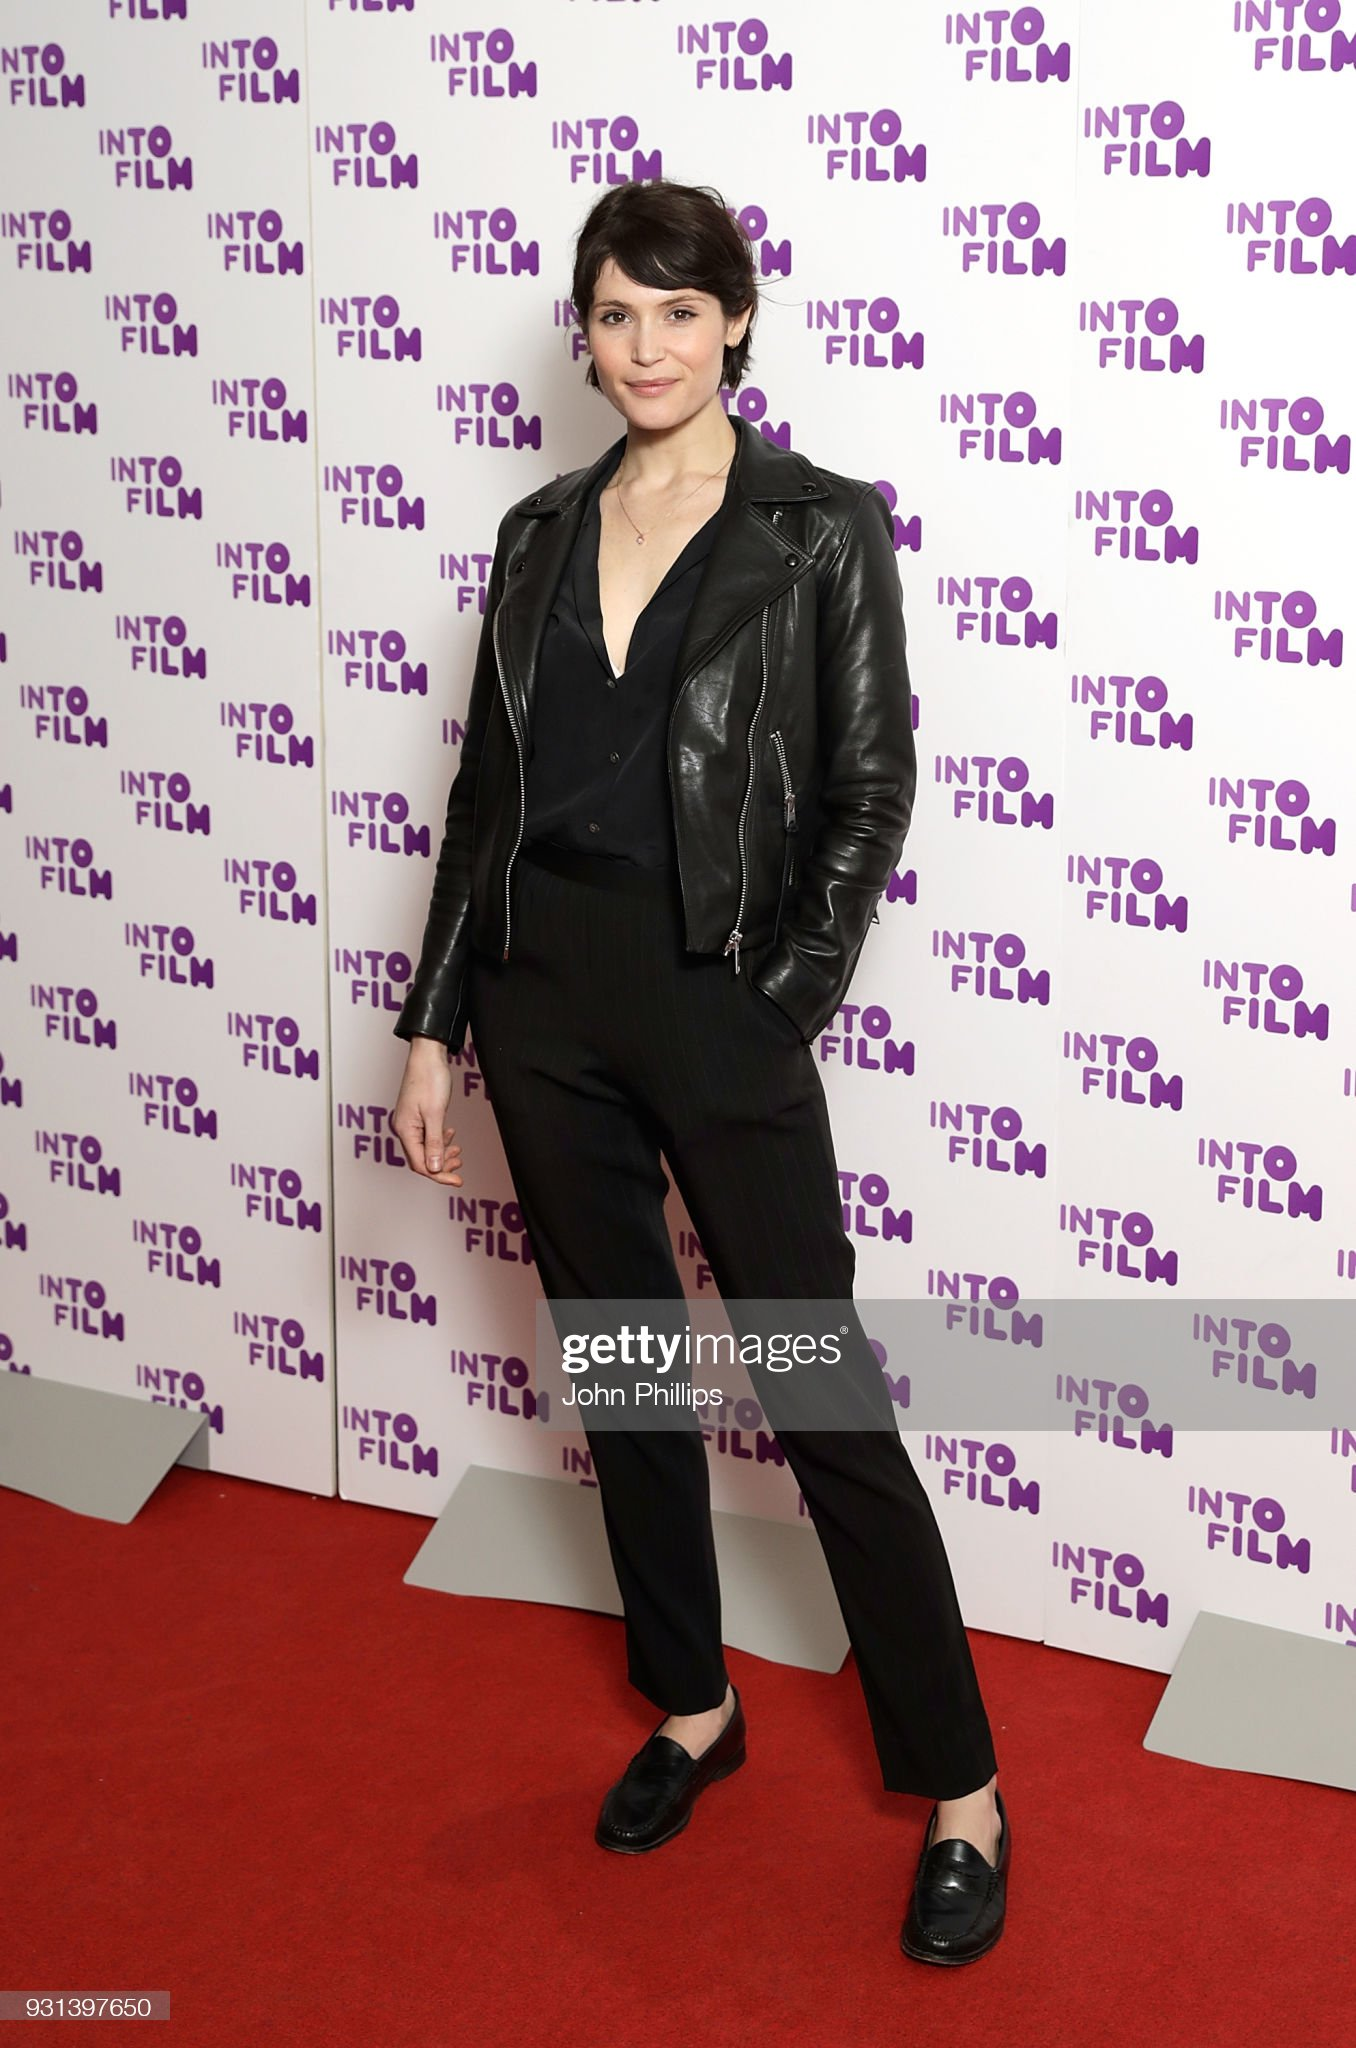 gemma-arterton-at-the-into-film-awards-at-bfi-southbank-on-march-13-picture-id931397650